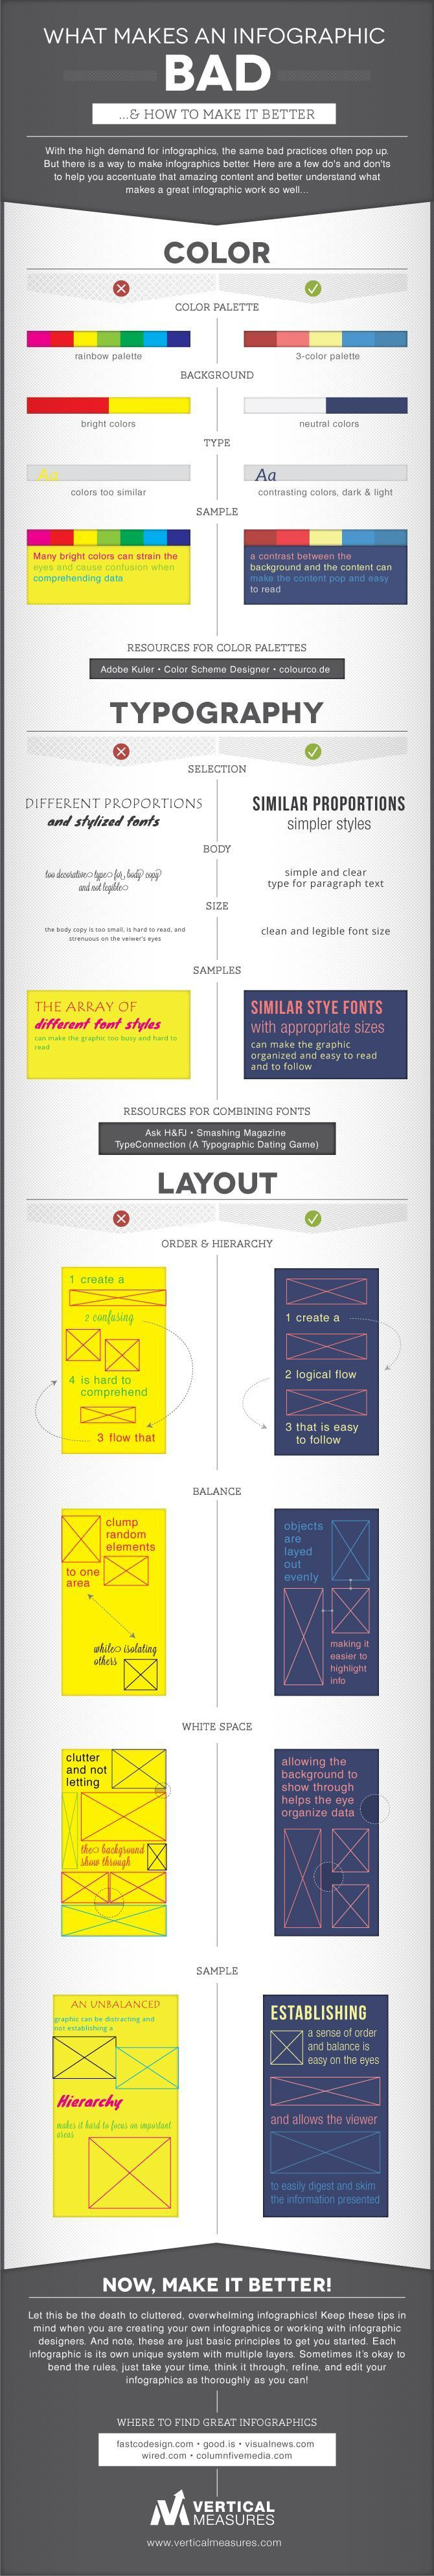 Infographics Dos and Donts: Basic Practices To Get Started With Infographics | #infographic #design #stlbiz